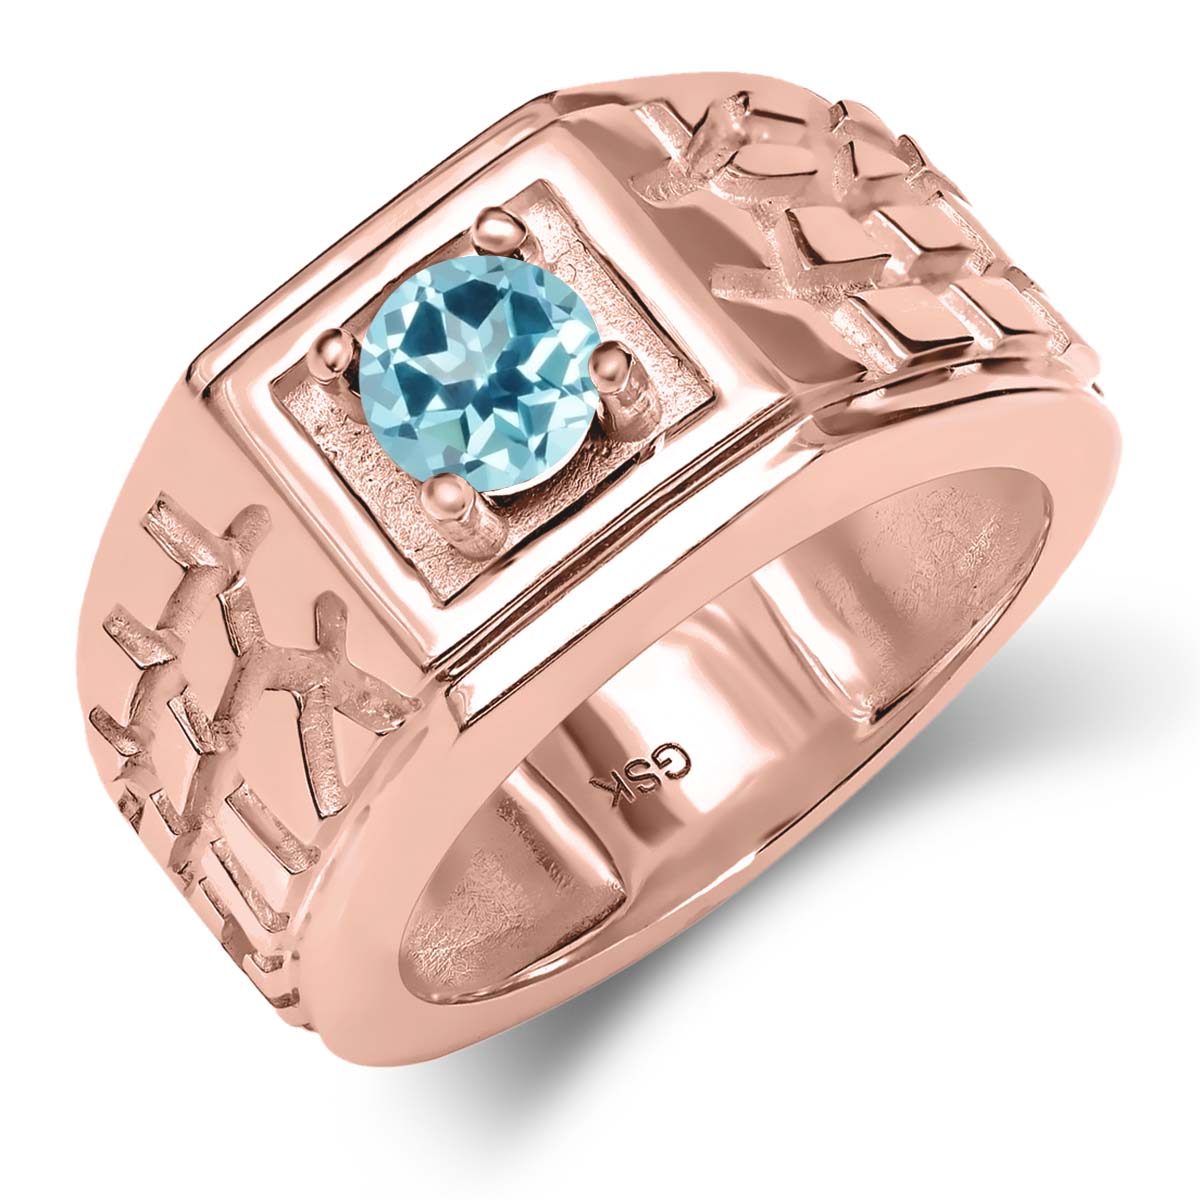 18K Rose Gold Ring Set with Round Ice Blue Topaz from Swarovski